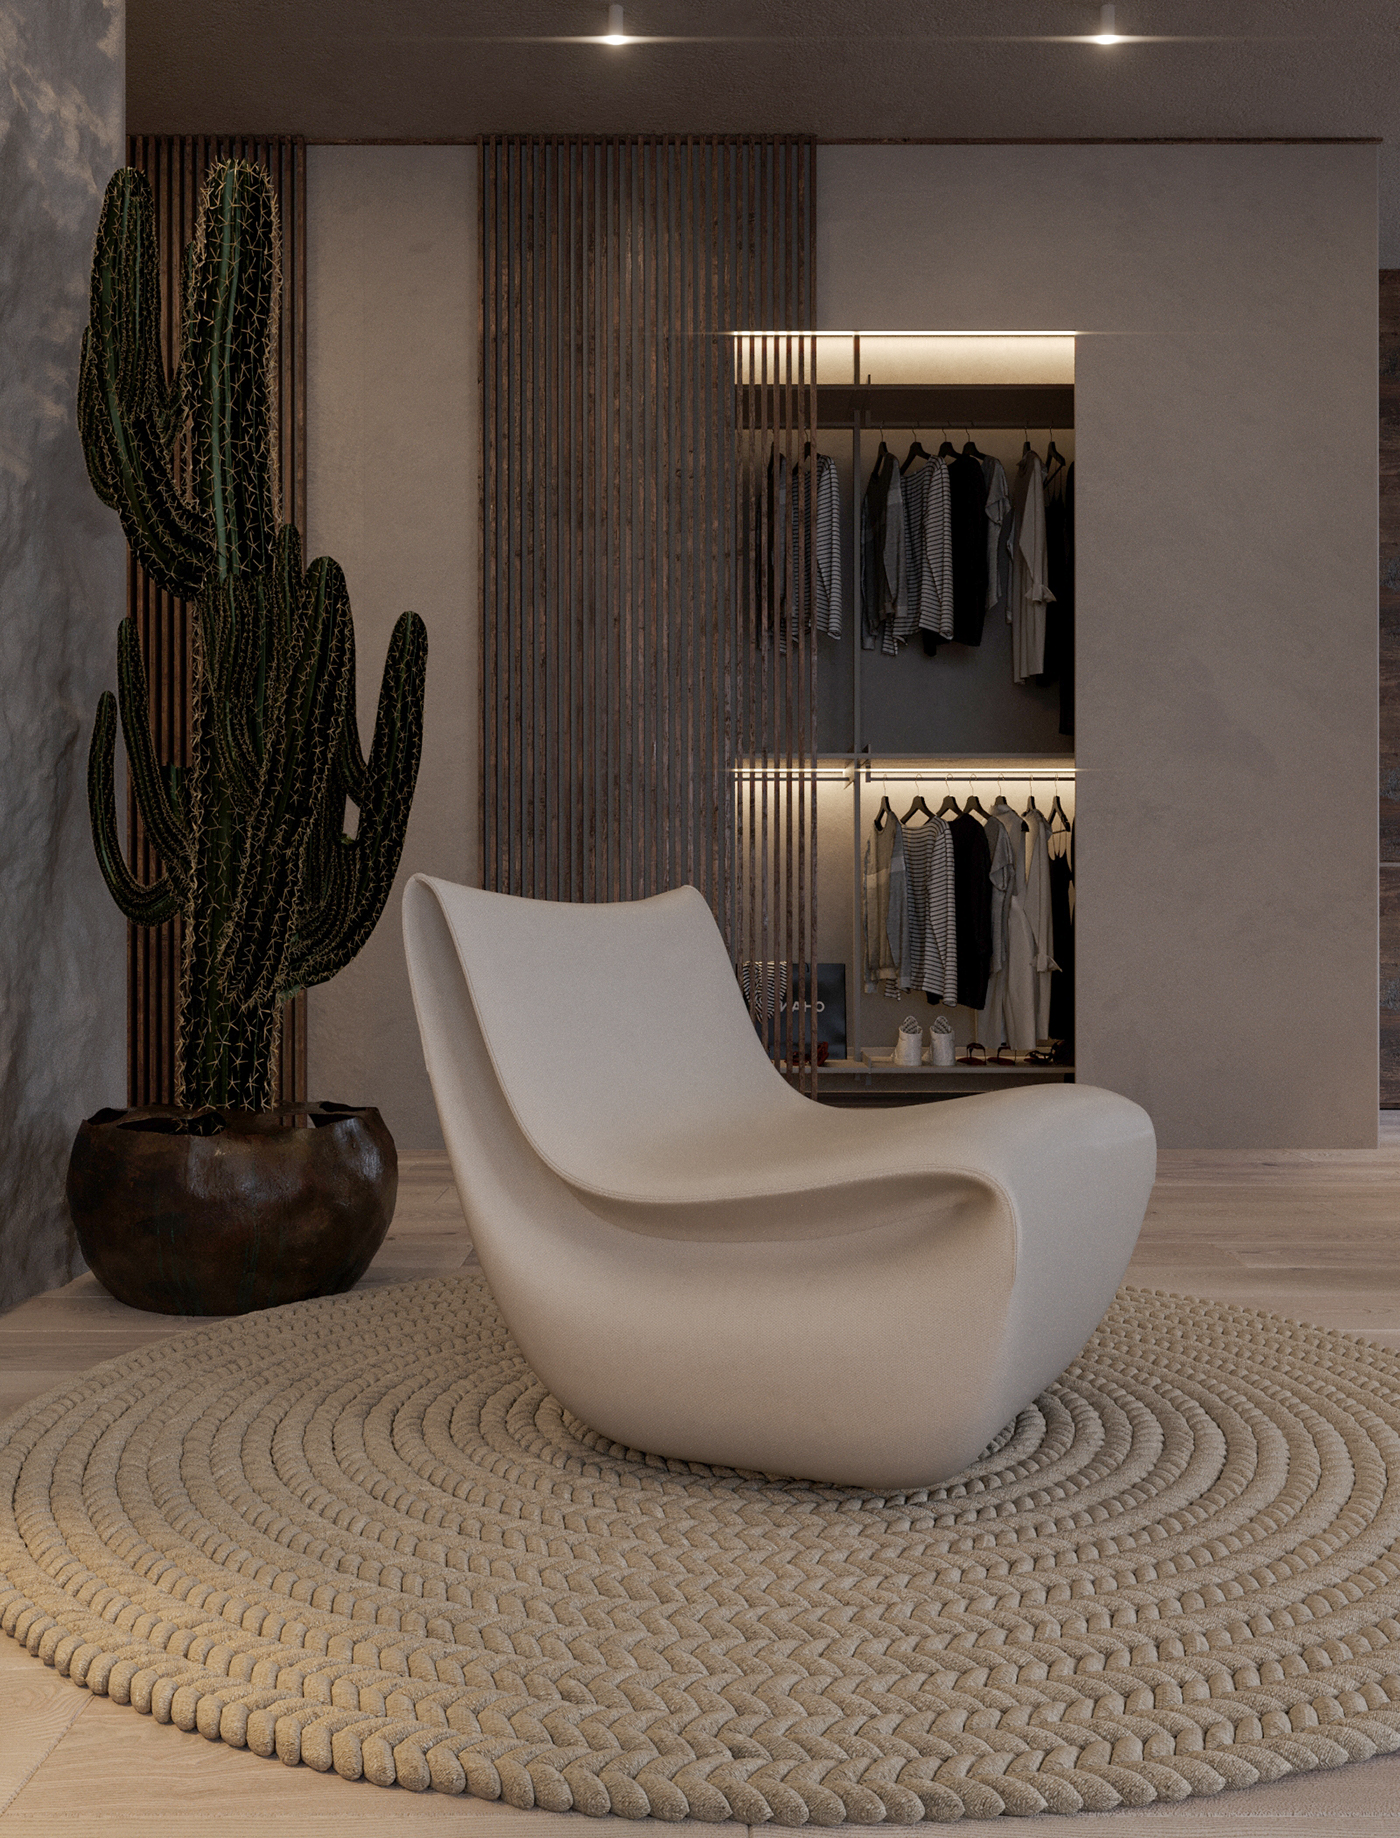 10 c. Lean and Chill Chair Design Ideas